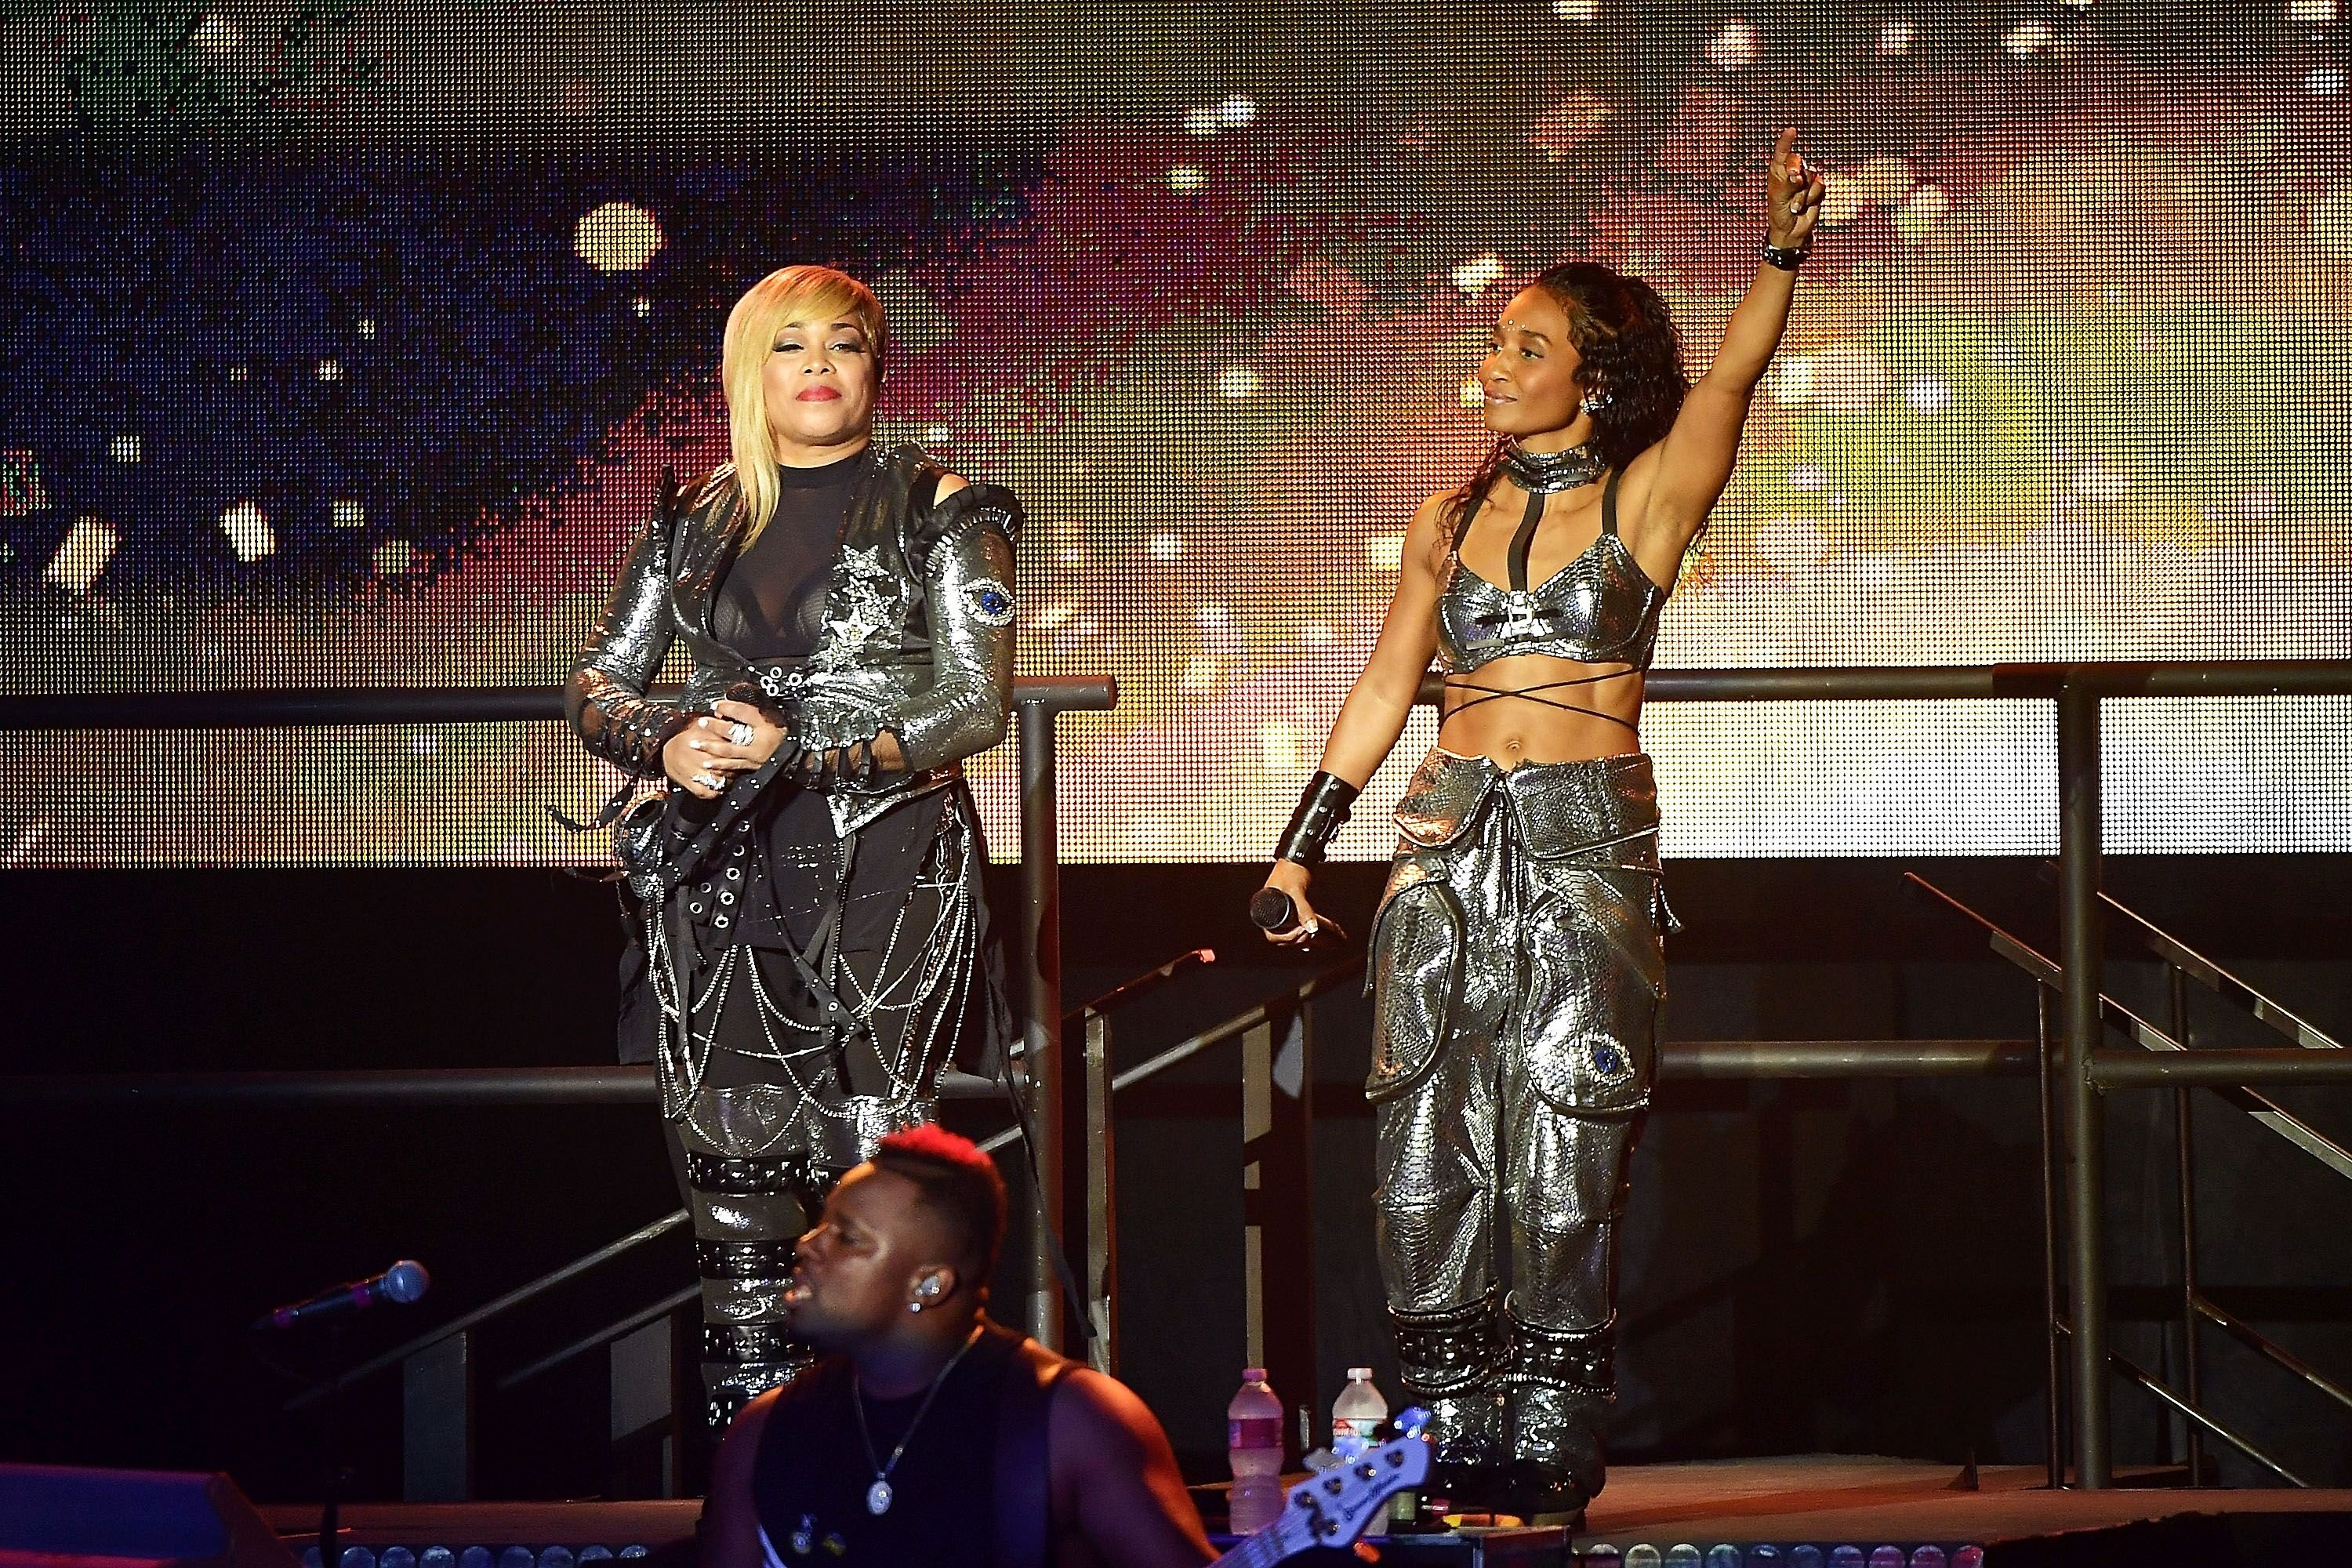 Tionne 'T-Boz' Watkins and Rozonda 'Chilli' Thomas perform as TLC during the I Love The 90s The Party Continues on July 14, 2017, in Los Angeles, California | Source: Matt Winkelmeyer/Getty Images